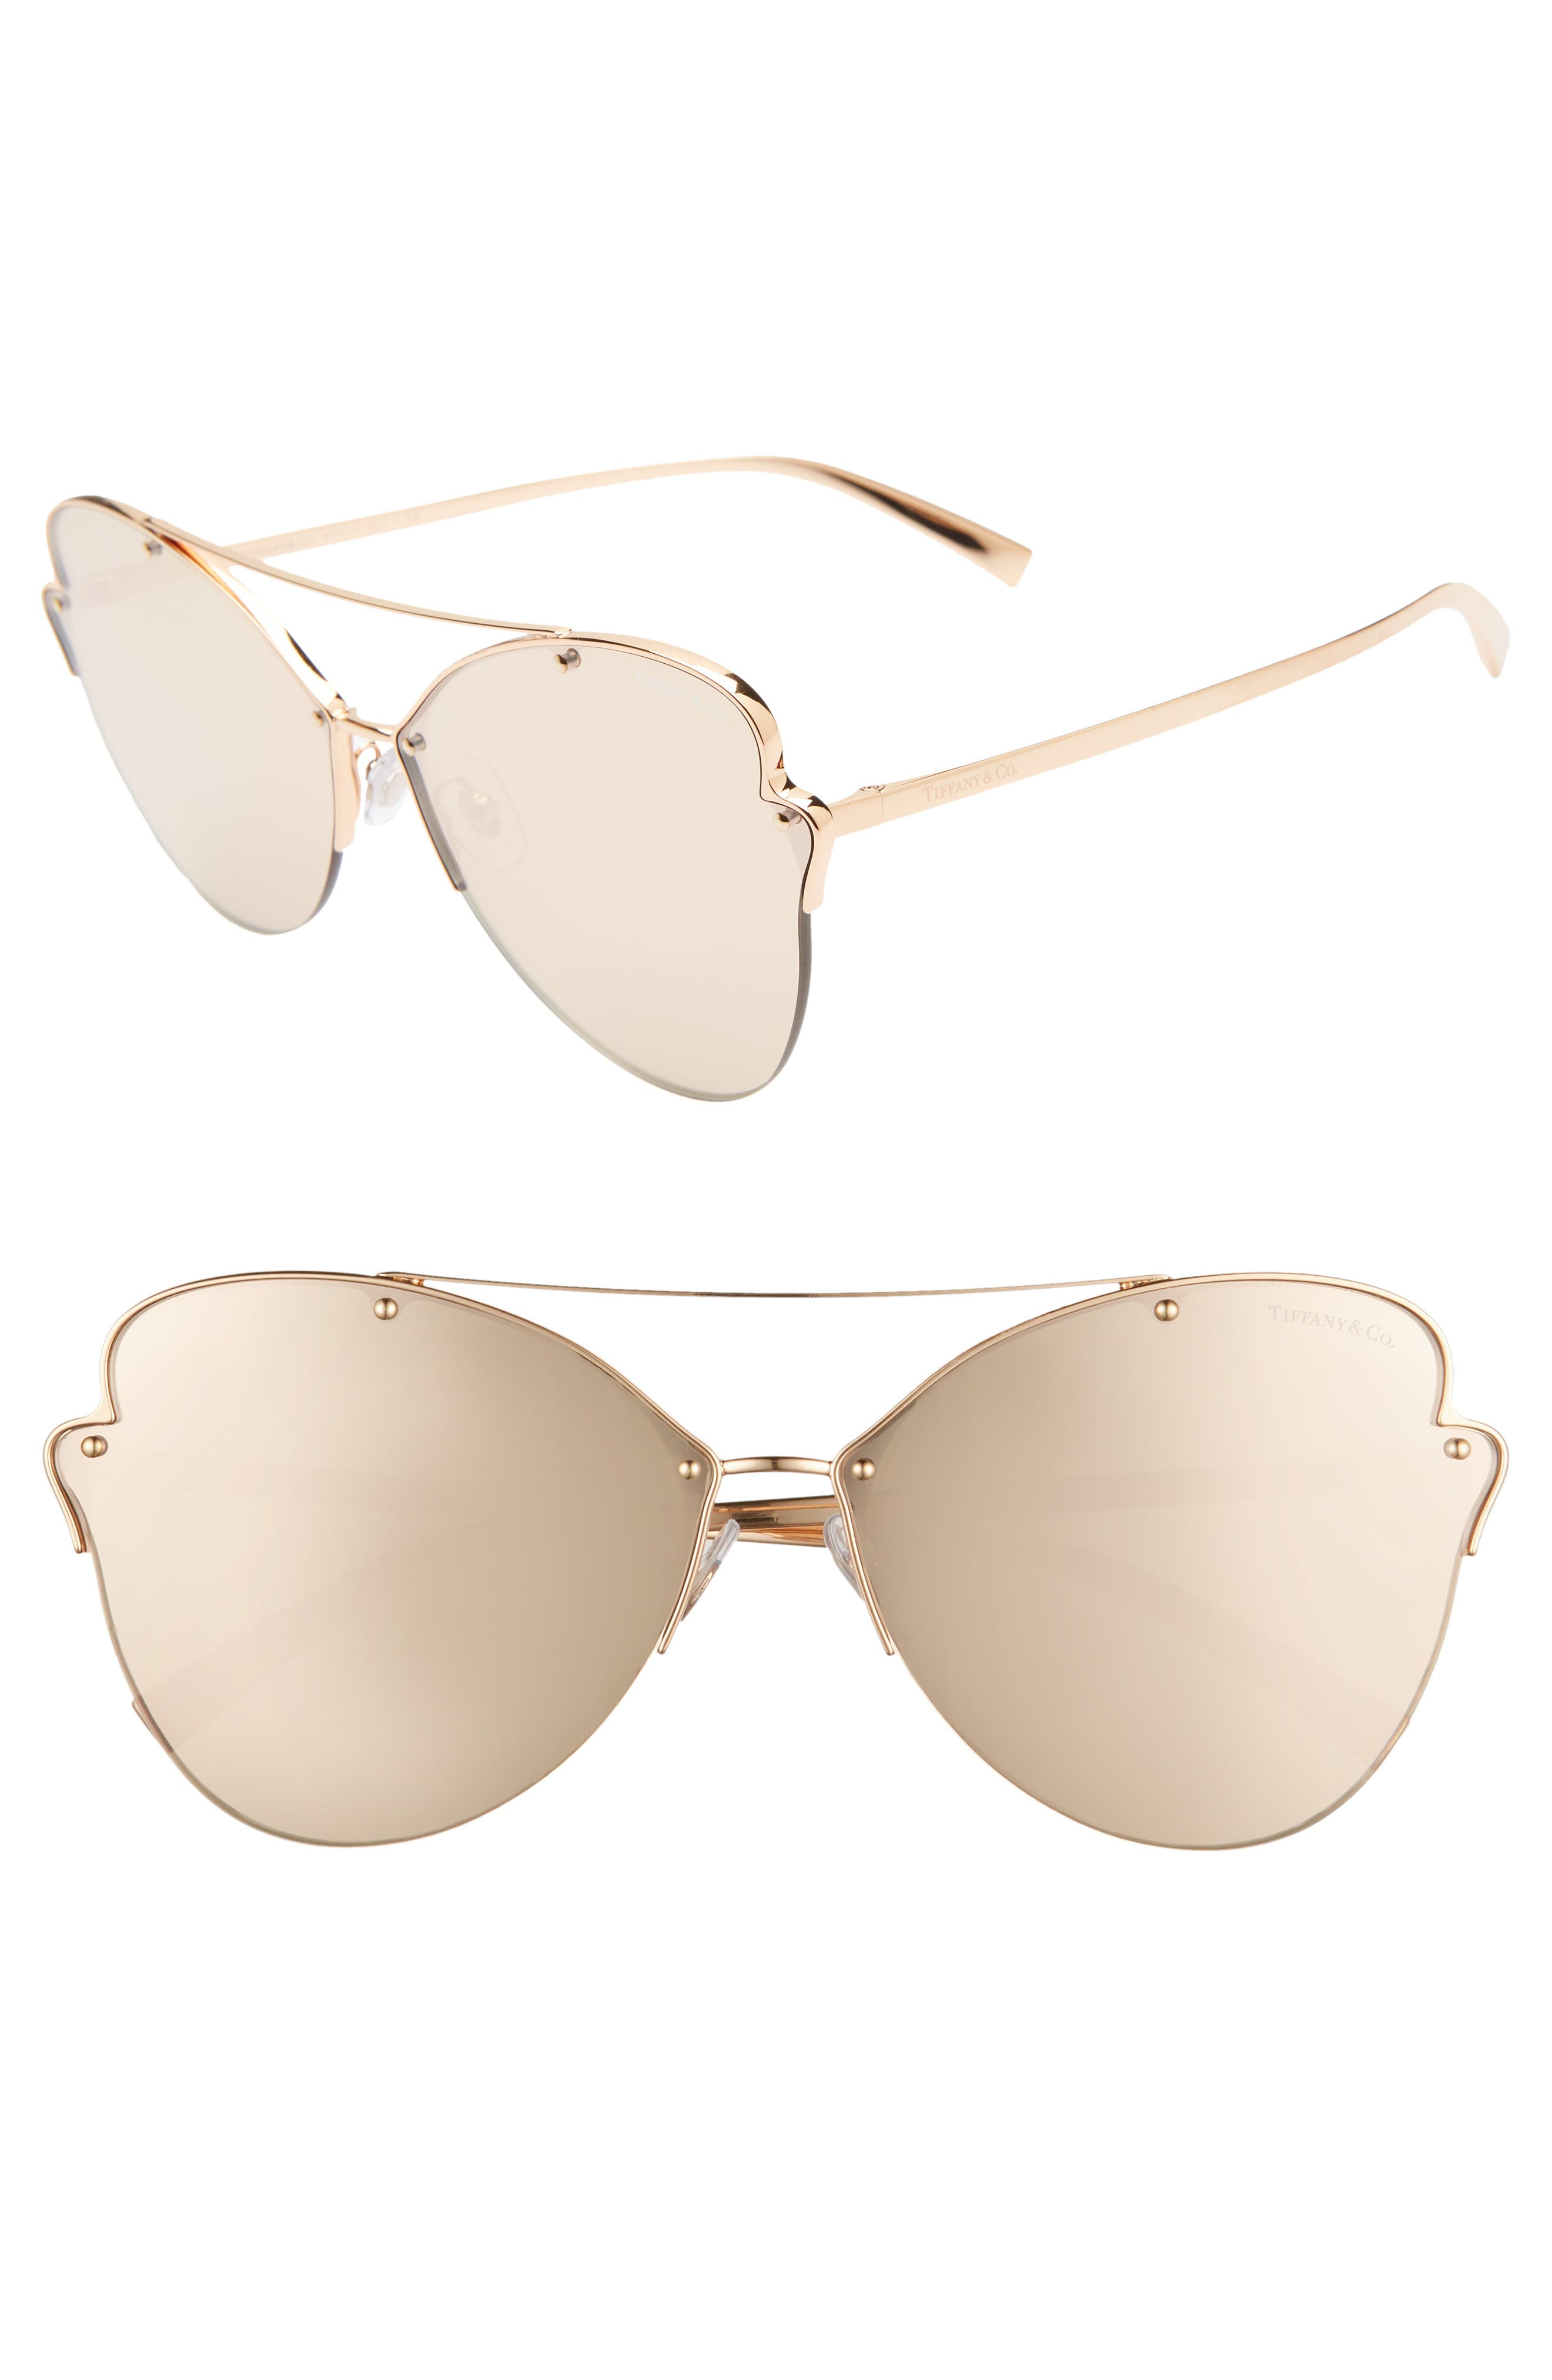 TIFFANY & CO Paper Flowers 64Mm Oversize Mirrored Sunglasses - Rose Gold Mirror